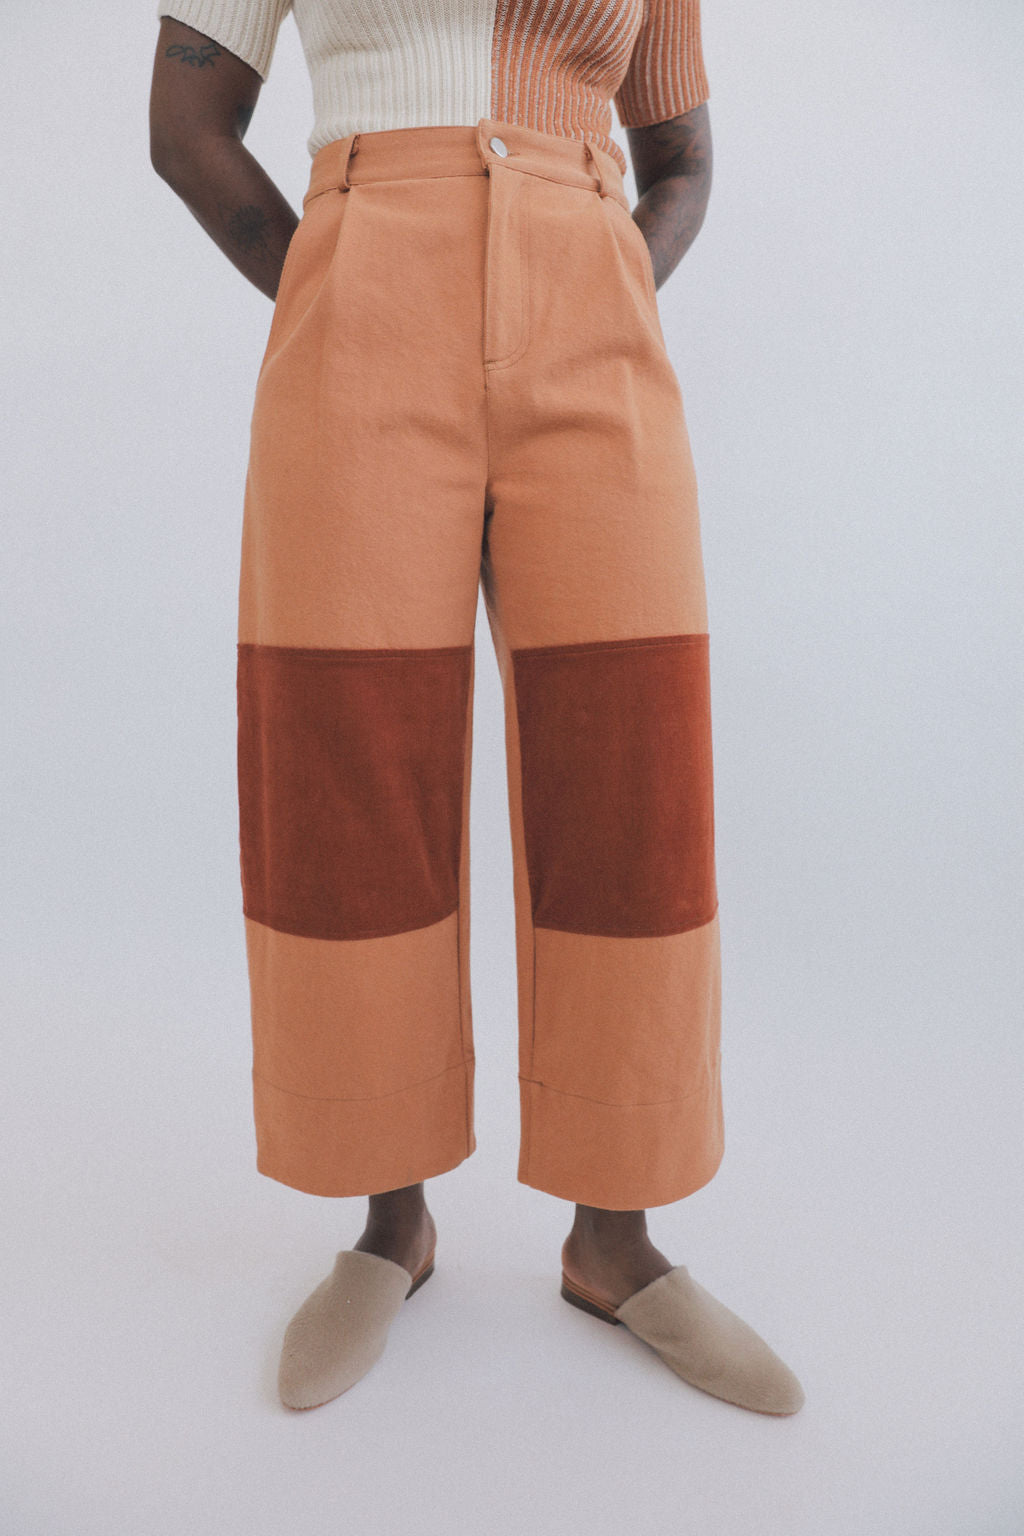 Quincy Work Pants Spice grid image